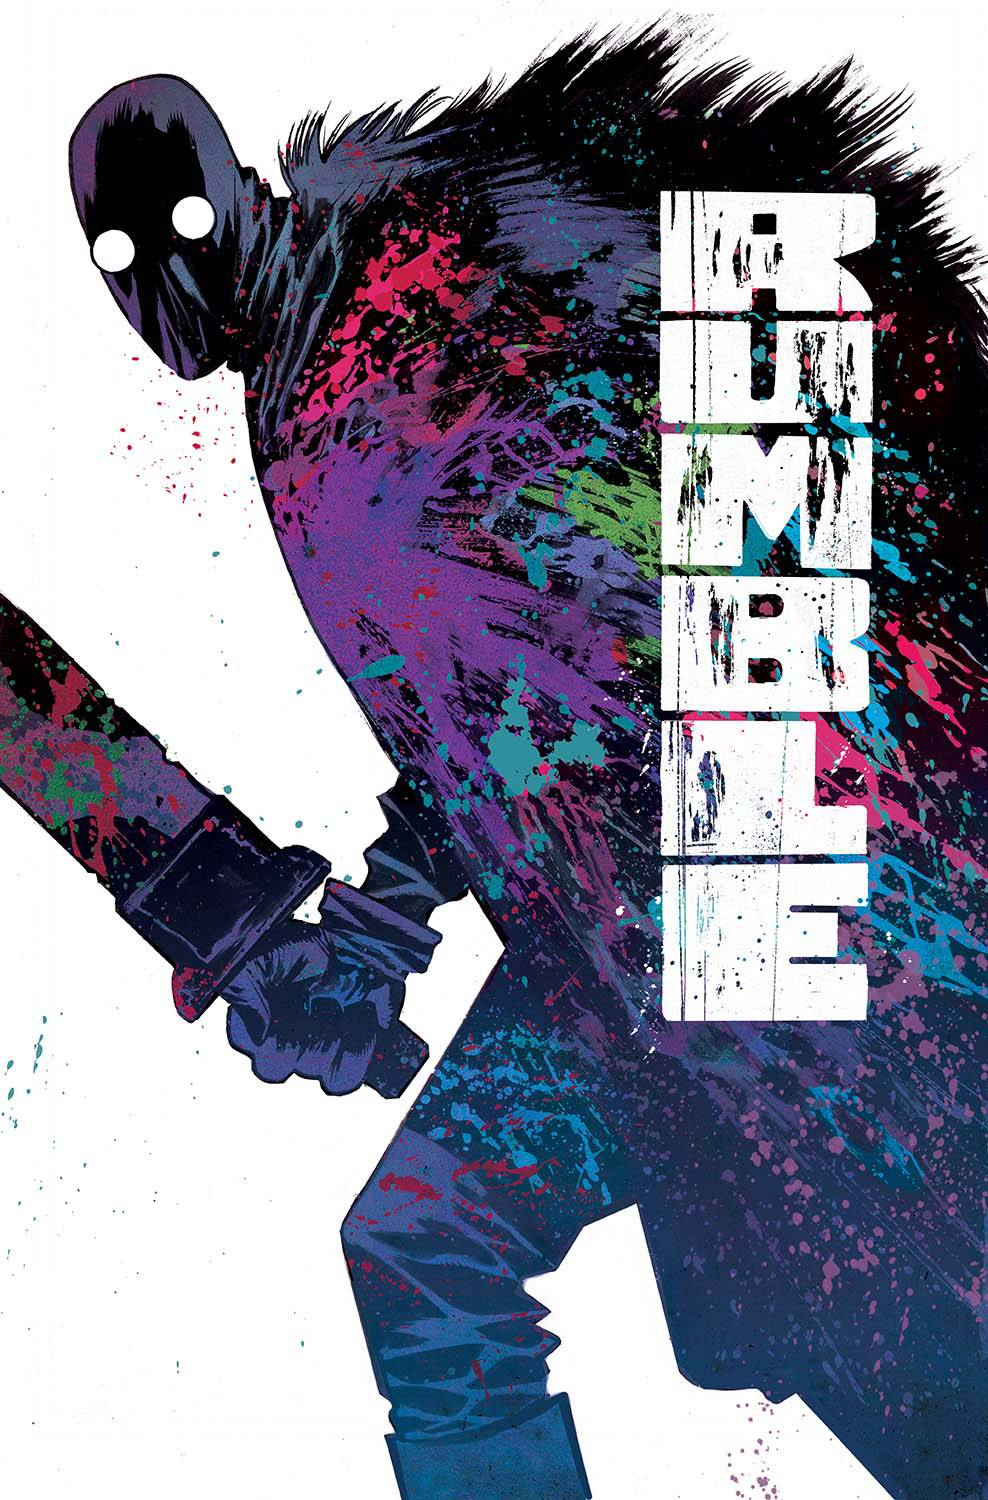 RUMBLE TP VOL 03 IMMORTAL COIL (OCT160704) (MR)